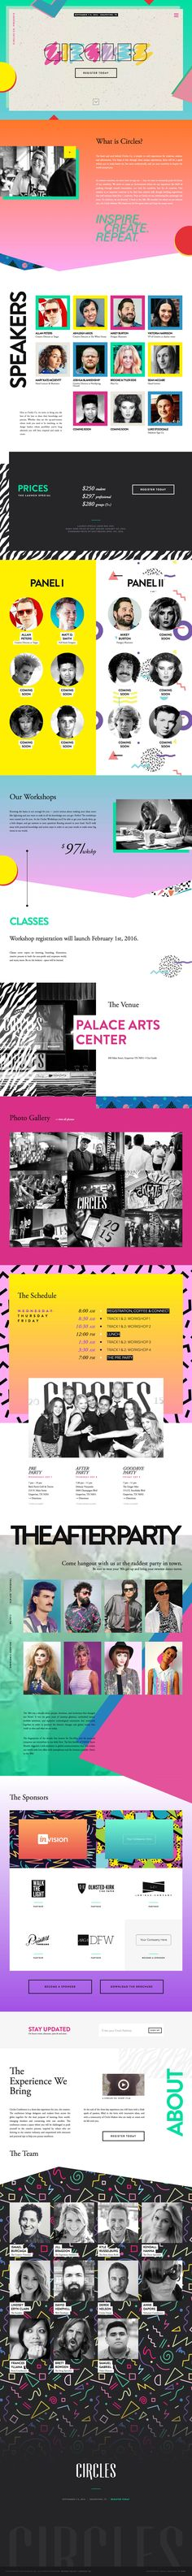 Big, colorful and retro would be used to best describe the radical new 80's themed One Pager for the 2016 'Circles Conference'.